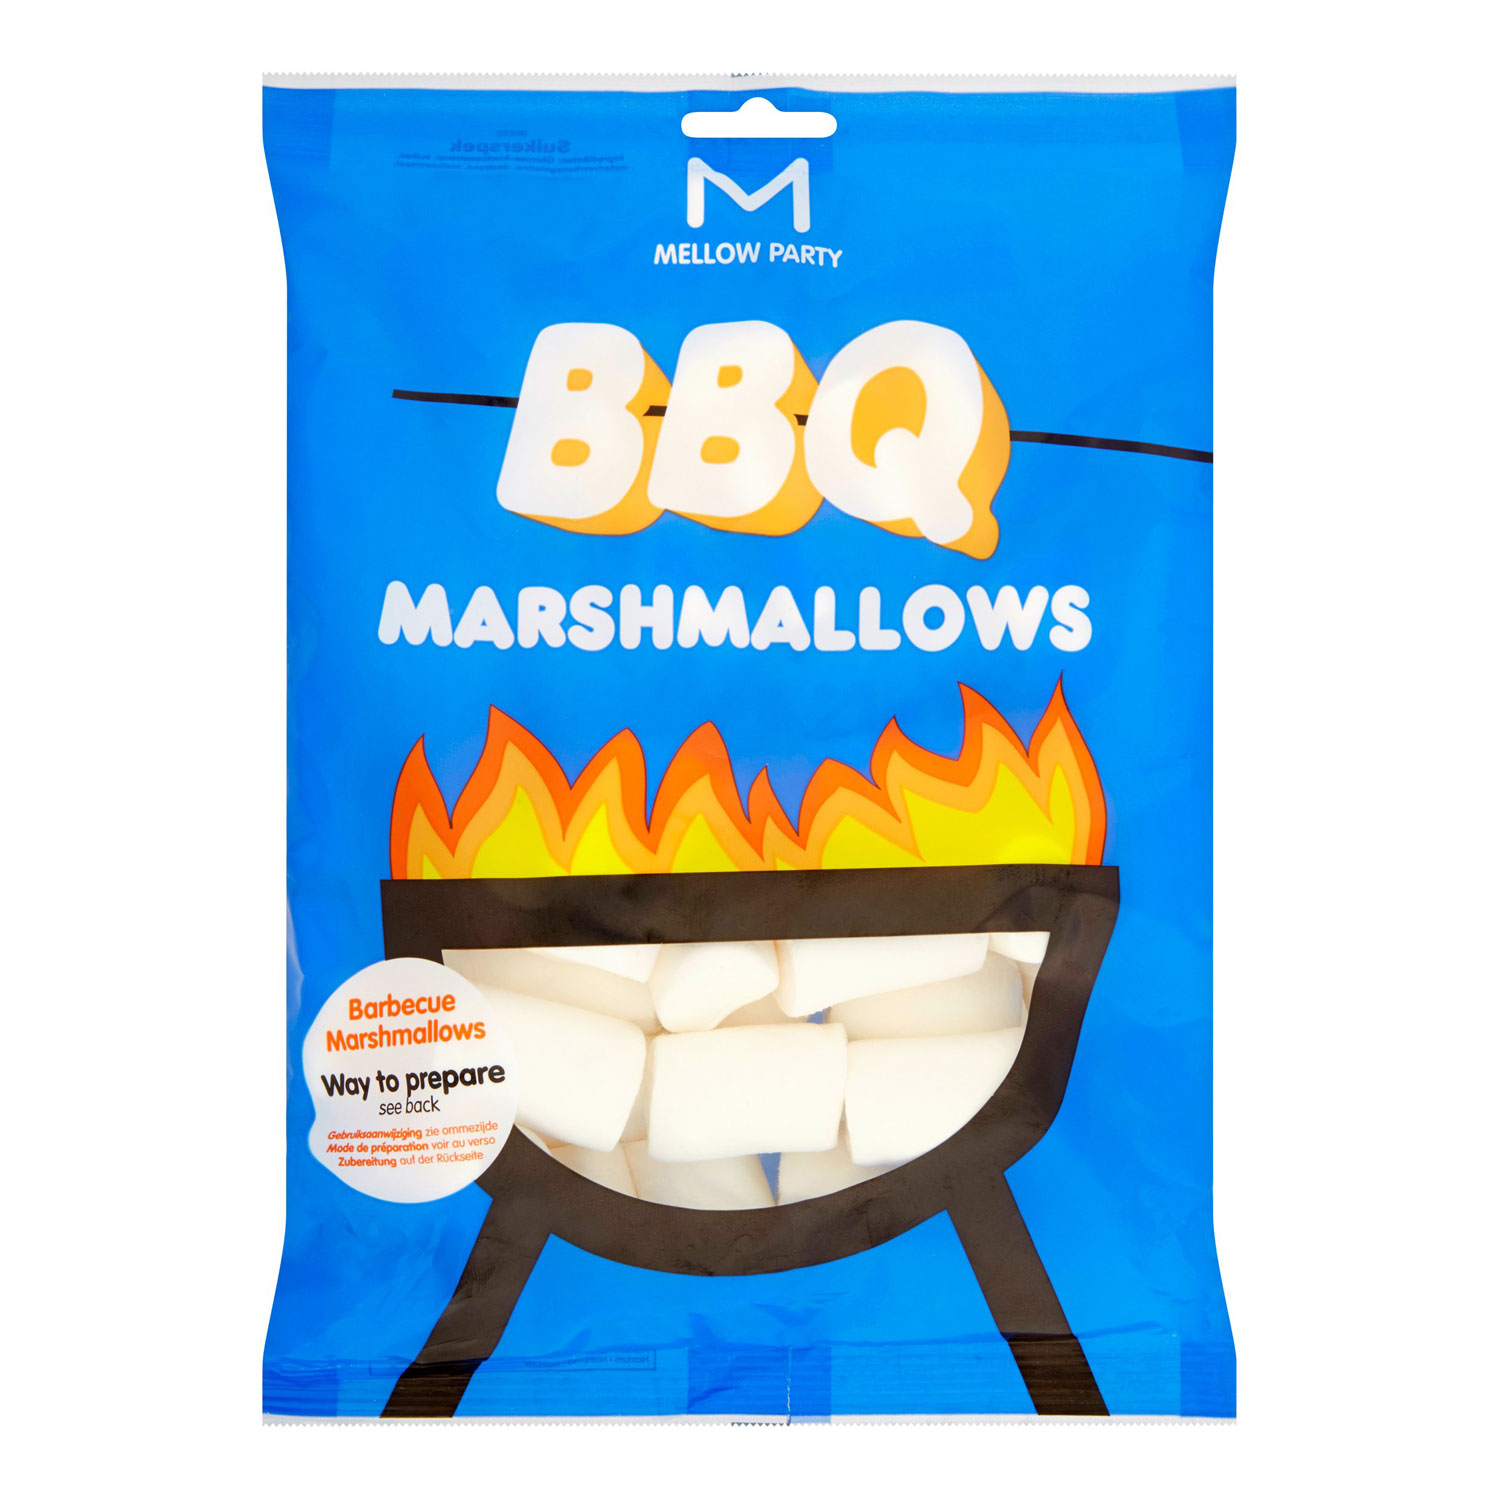 BBQ MARSHMALLOW PARTY GR250